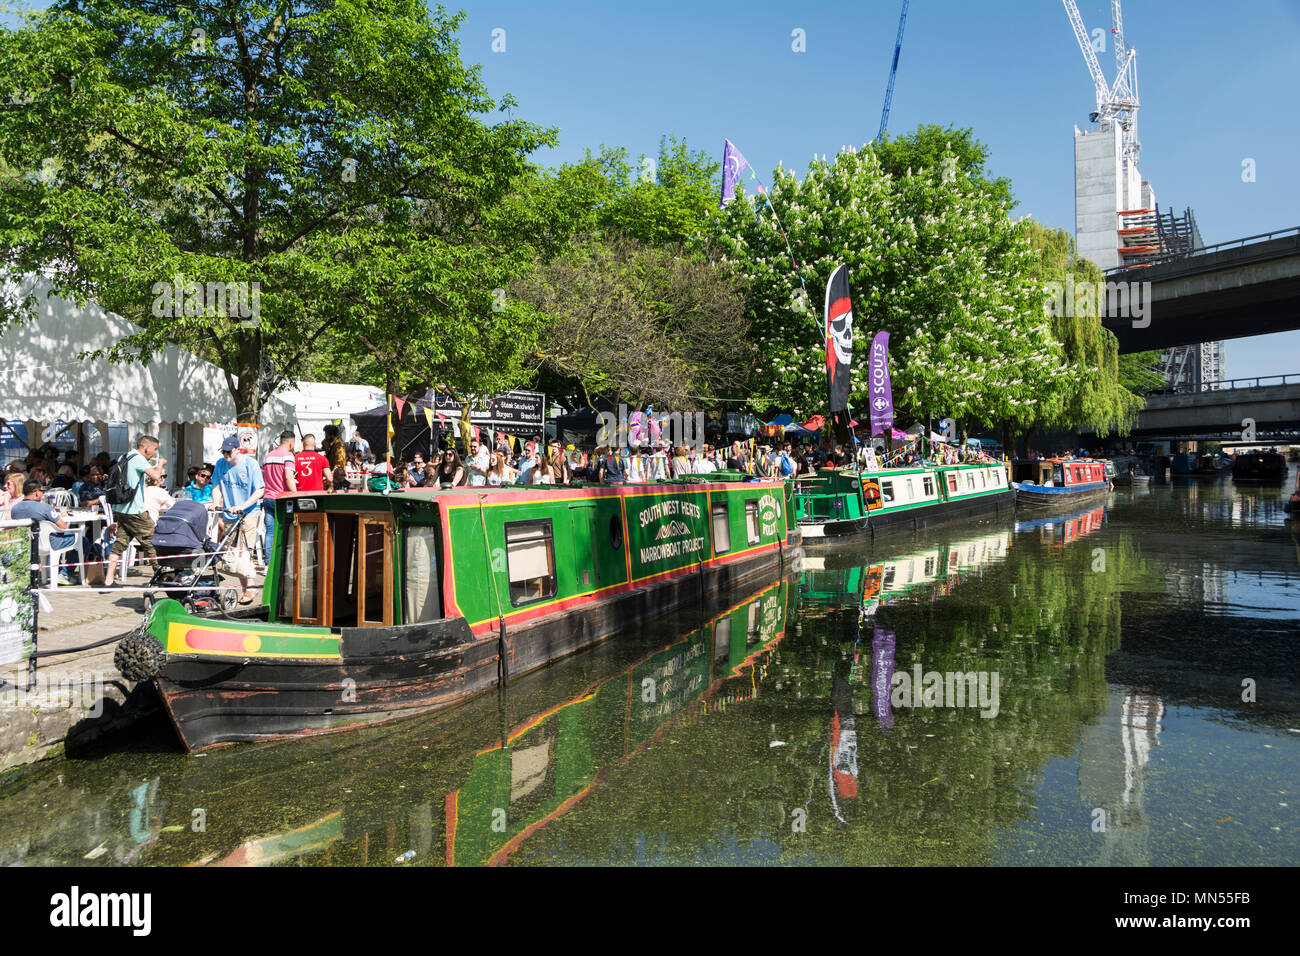 Bank Holiday weekend IWA Canalway Cavalcade waterways festival in London's Little Venice. - Stock Image